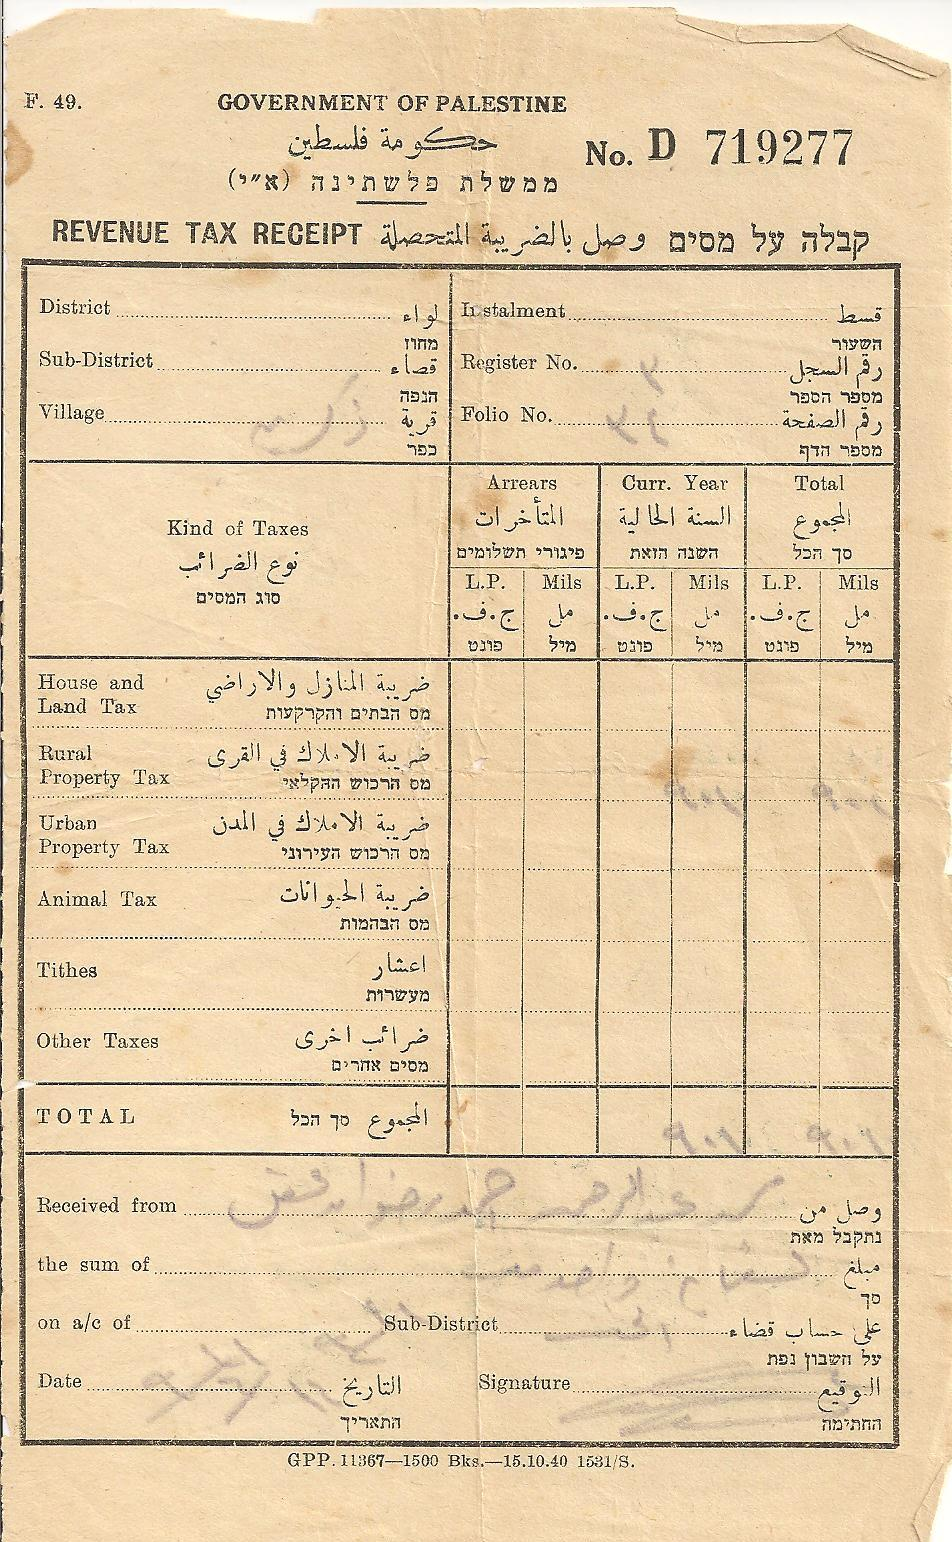 Thikrin - ذِكْرِين/زِكْرِين : Old document belong to the late Mohammad Abdelrahman Aqel